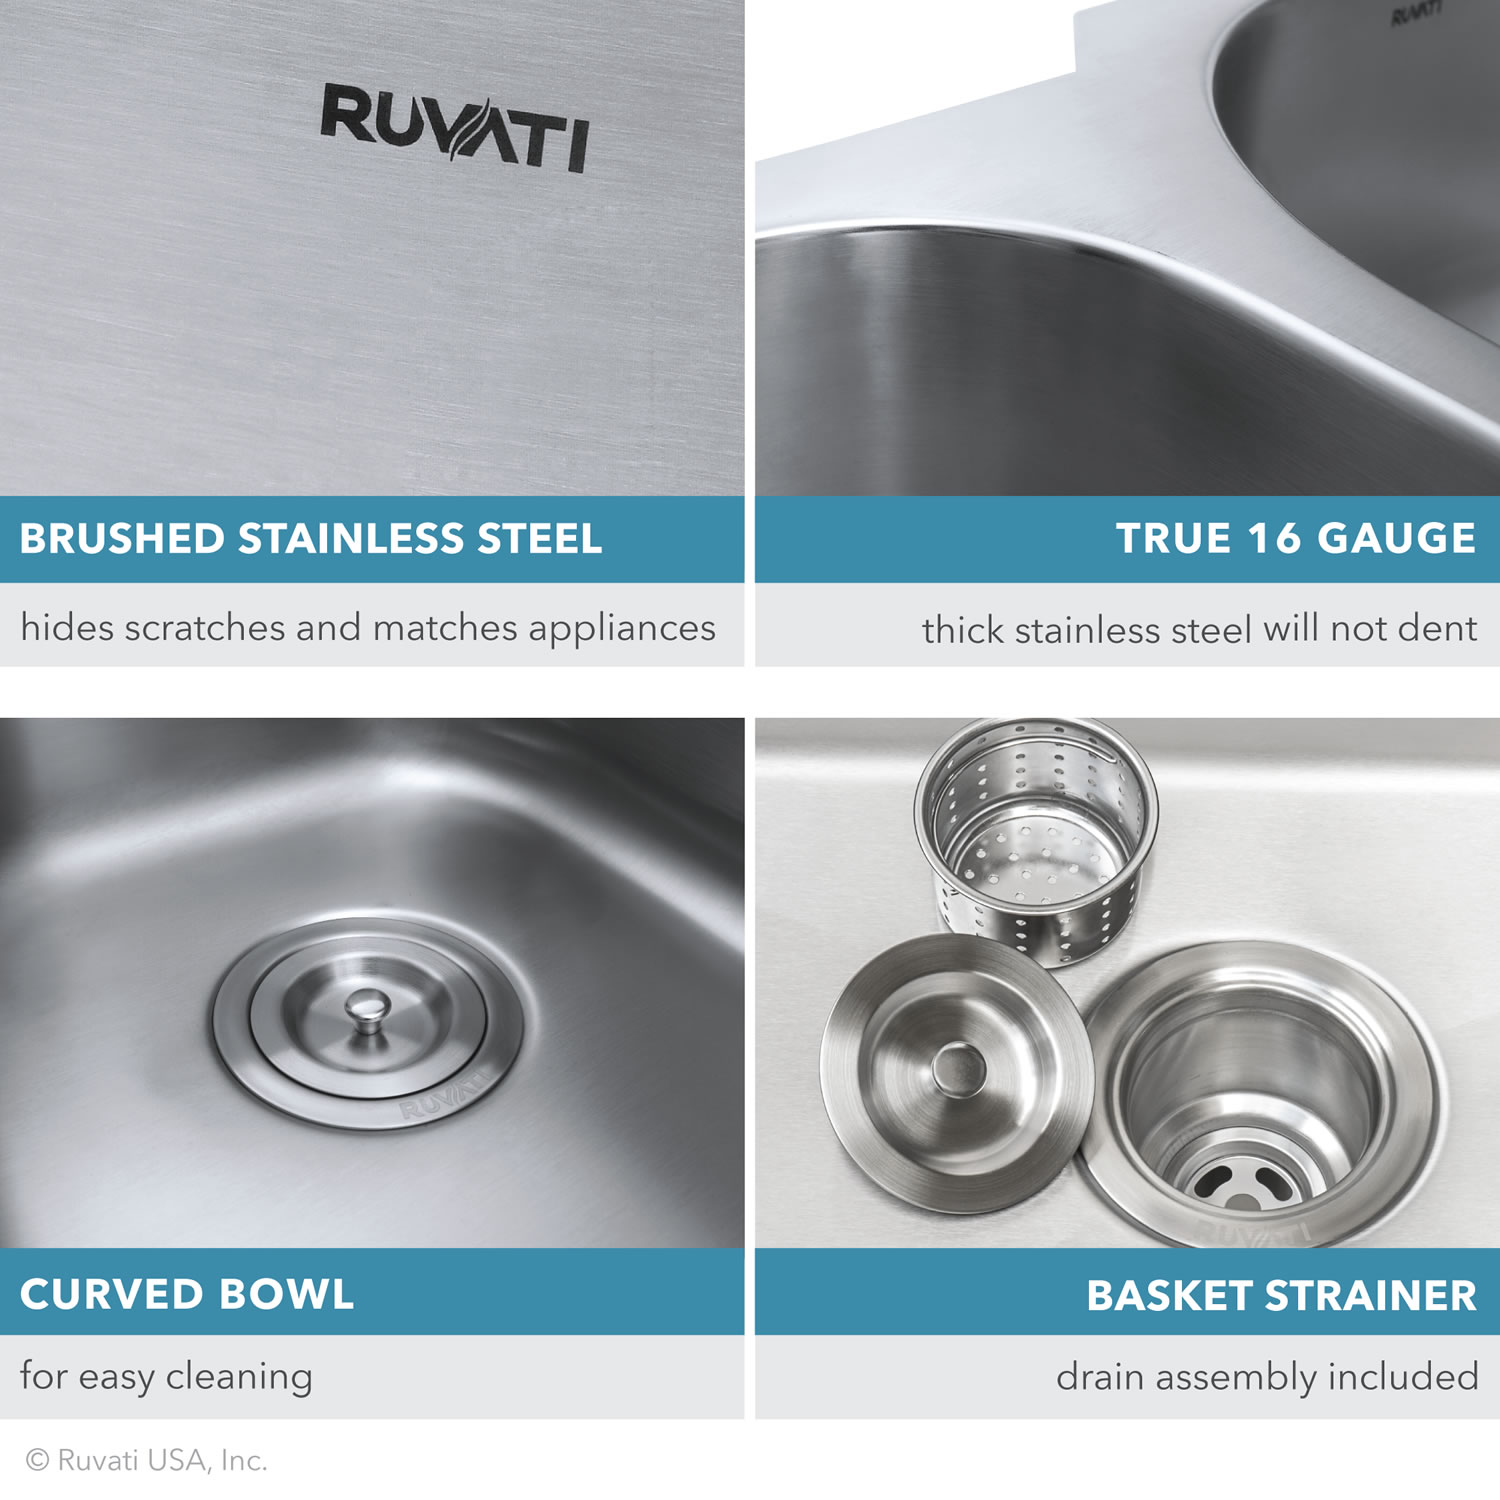 32 Inch Low Divide 50 50 Double Bowl Undermount 16 Gauge Stainless Steel Kitchen Sink Ruvati Usa